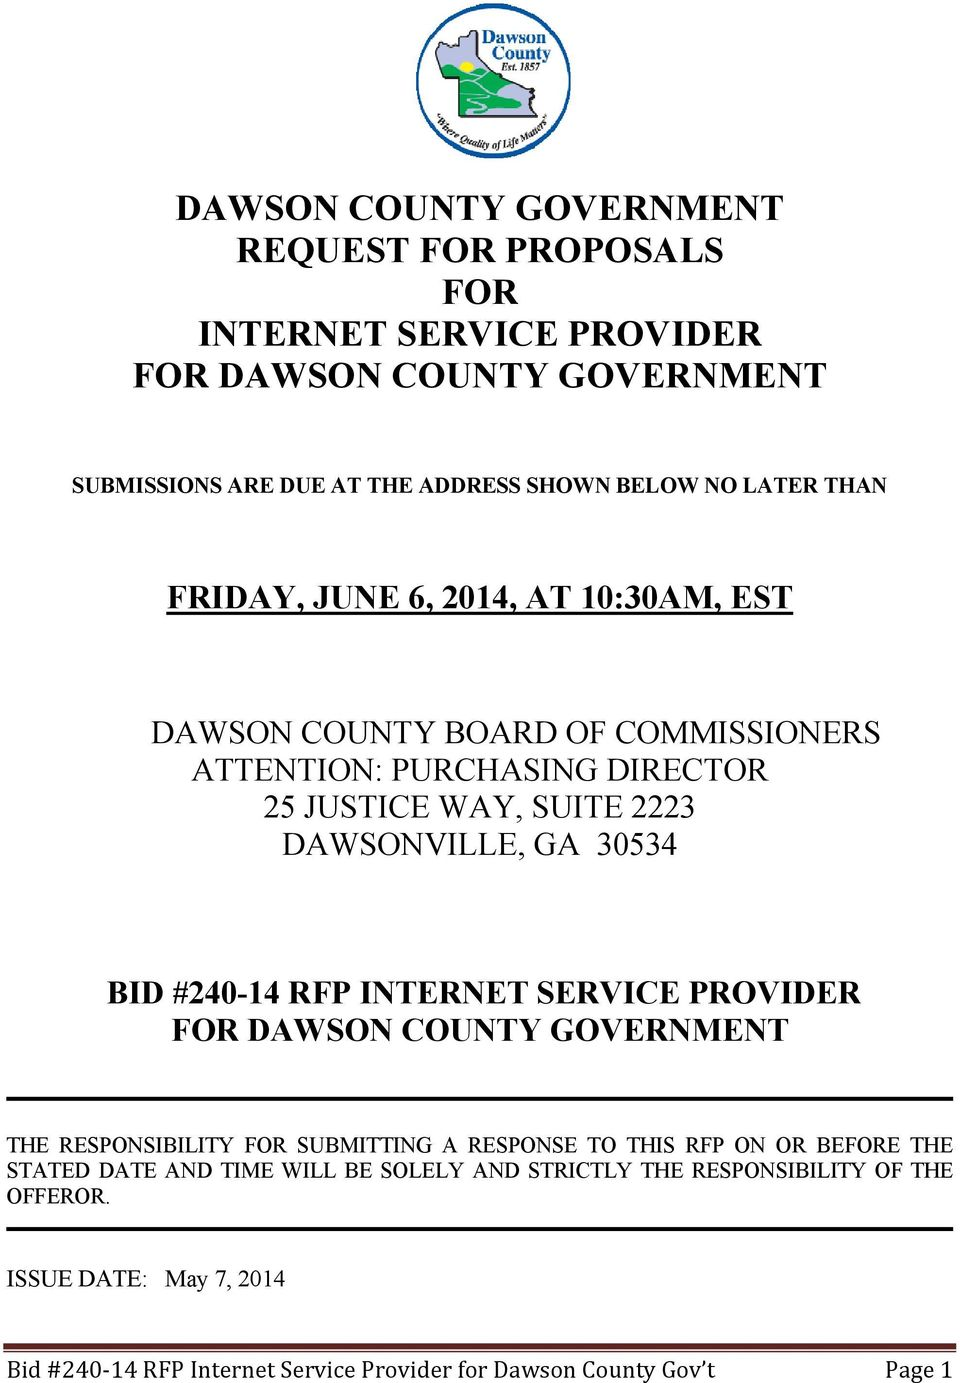 BID #240-14 RFP INTERNET SERVICE PROVIDER FOR DAWSON COUNTY GOVERNMENT THE RESPONSIBILITY FOR SUBMITTING A RESPONSE TO THIS RFP ON OR BEFORE THE STATED DATE AND